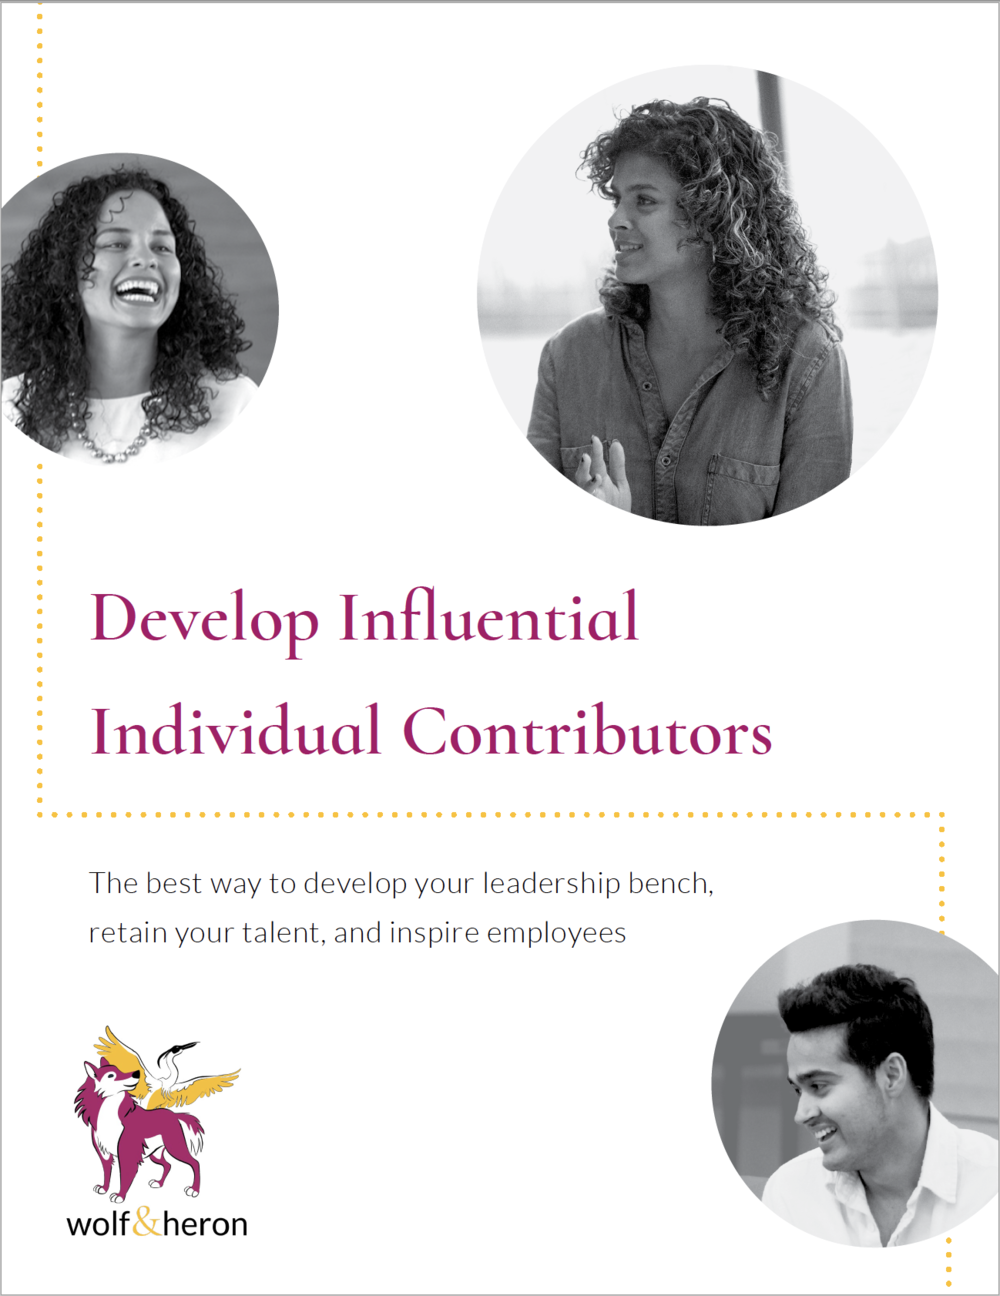 DevelopInfluentialIndividualContributors_WhitePaper_CoverImage.png